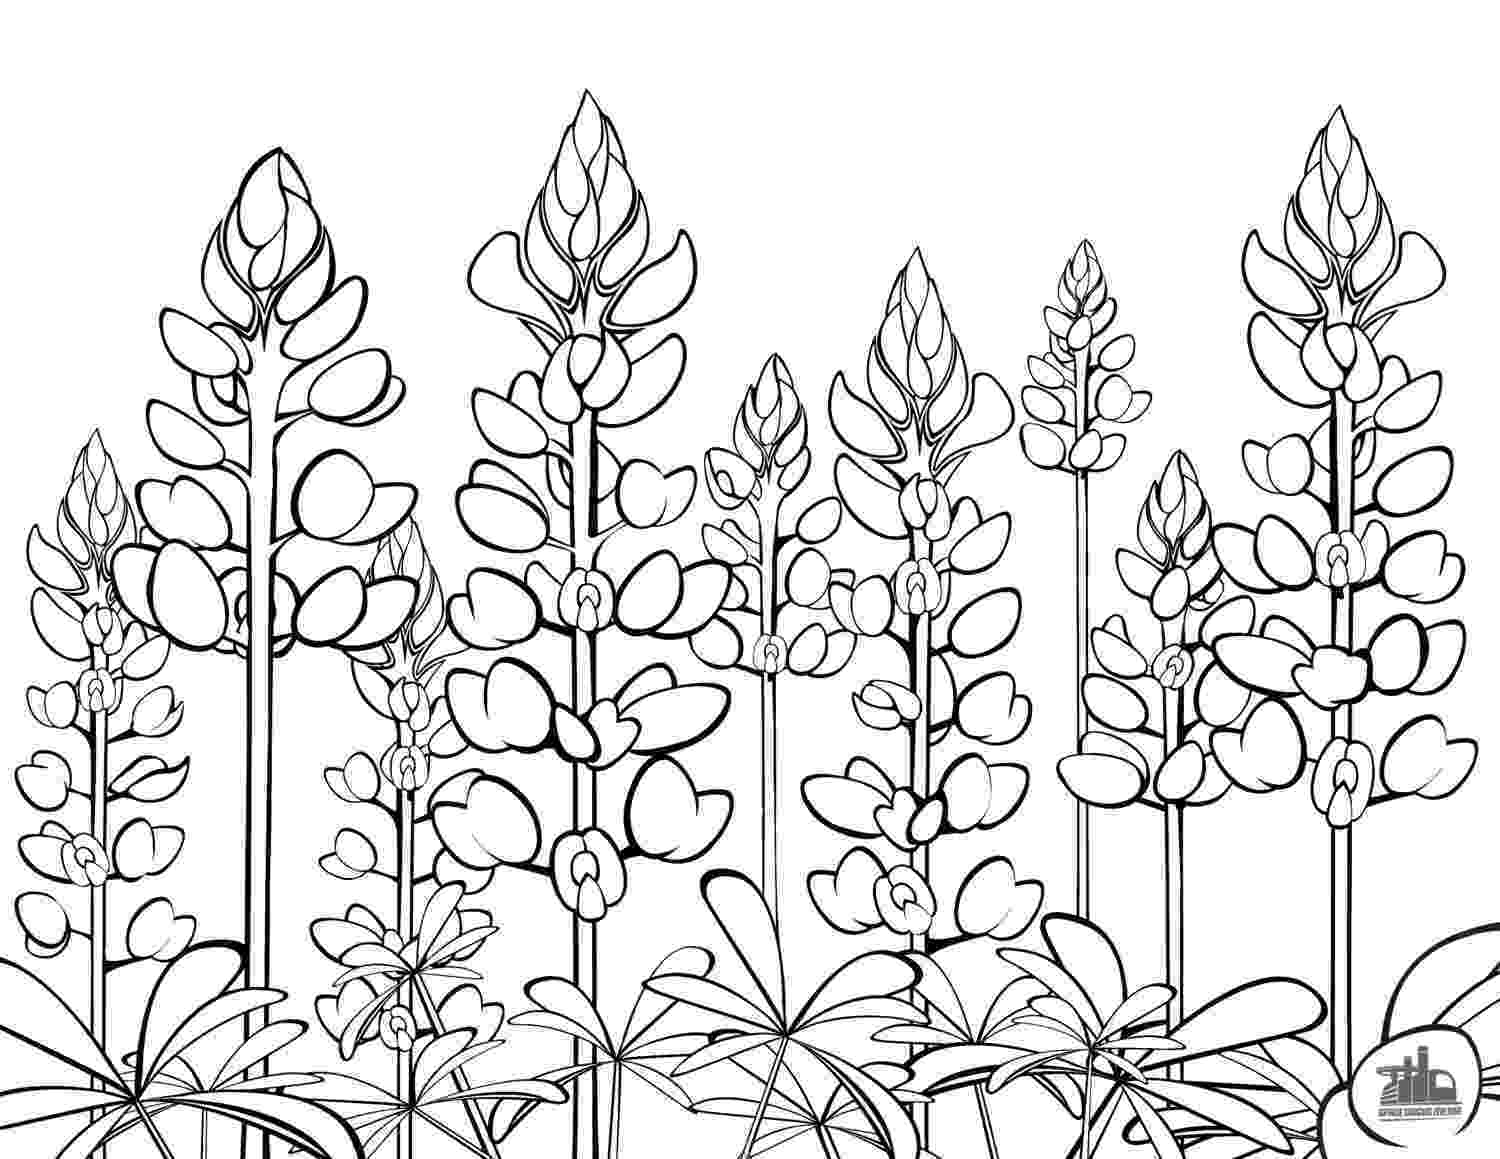 texas coloring page texas bluebonnets coloring sheet texas coloring page